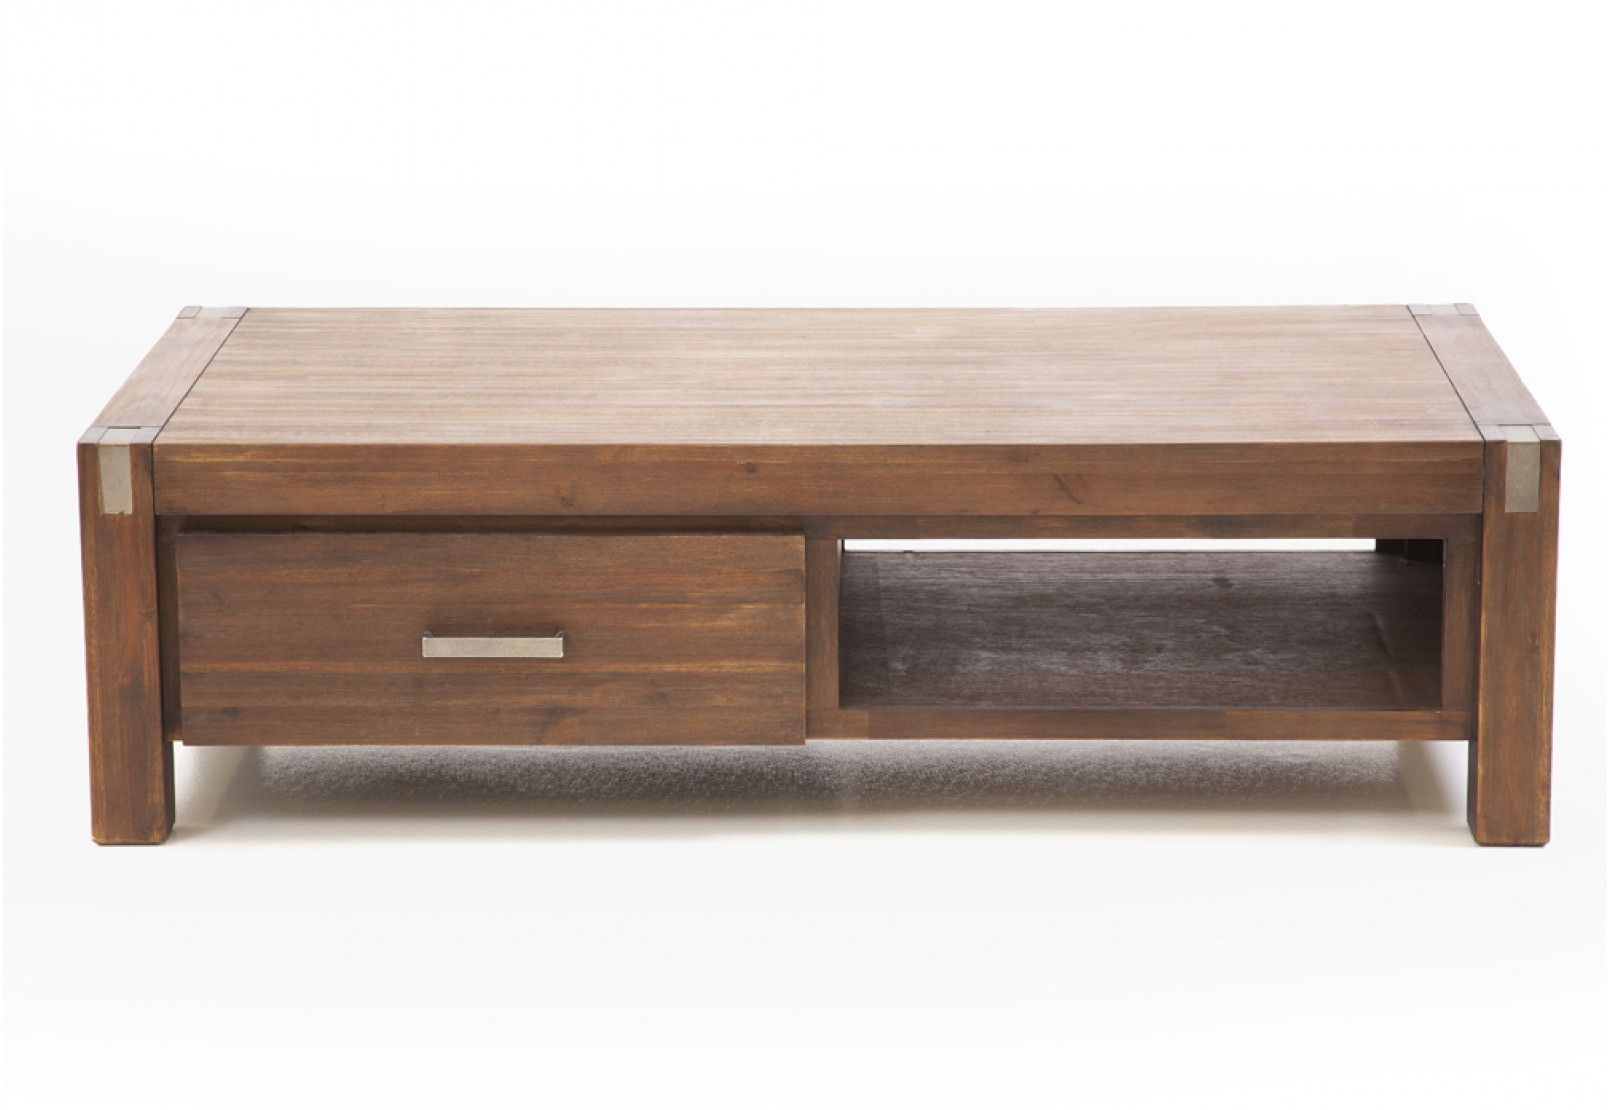 Charming Silverwood Coffee Table | Super A Mart